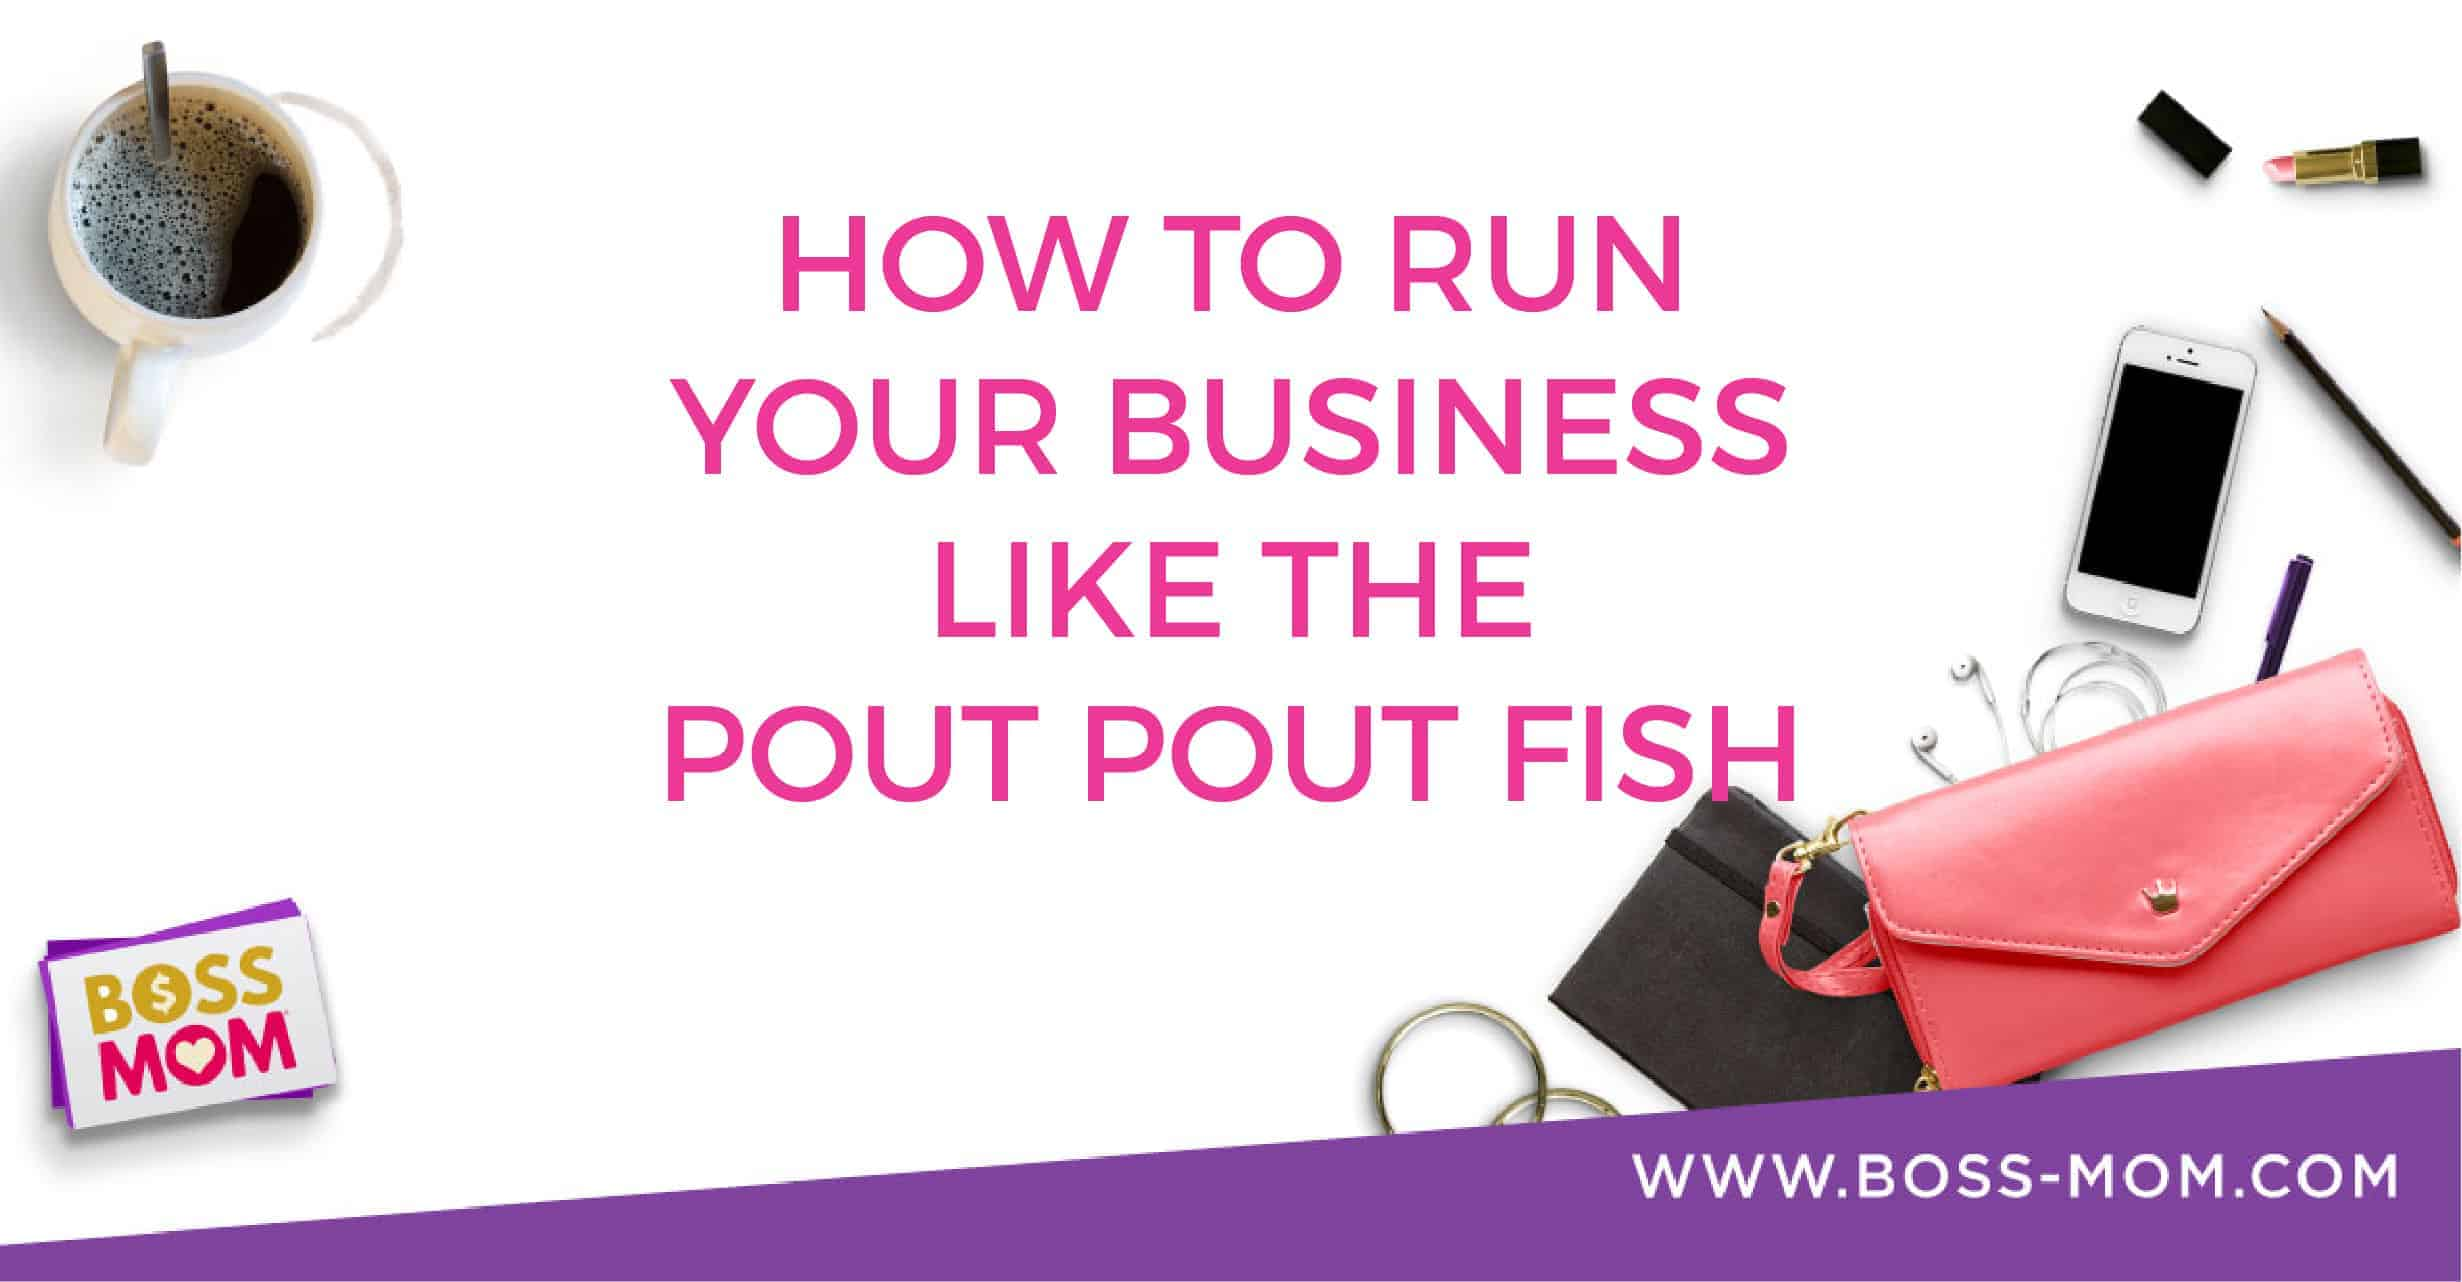 Episode 214: How to Run Your Business Like the Pout Pout Fish with Dana